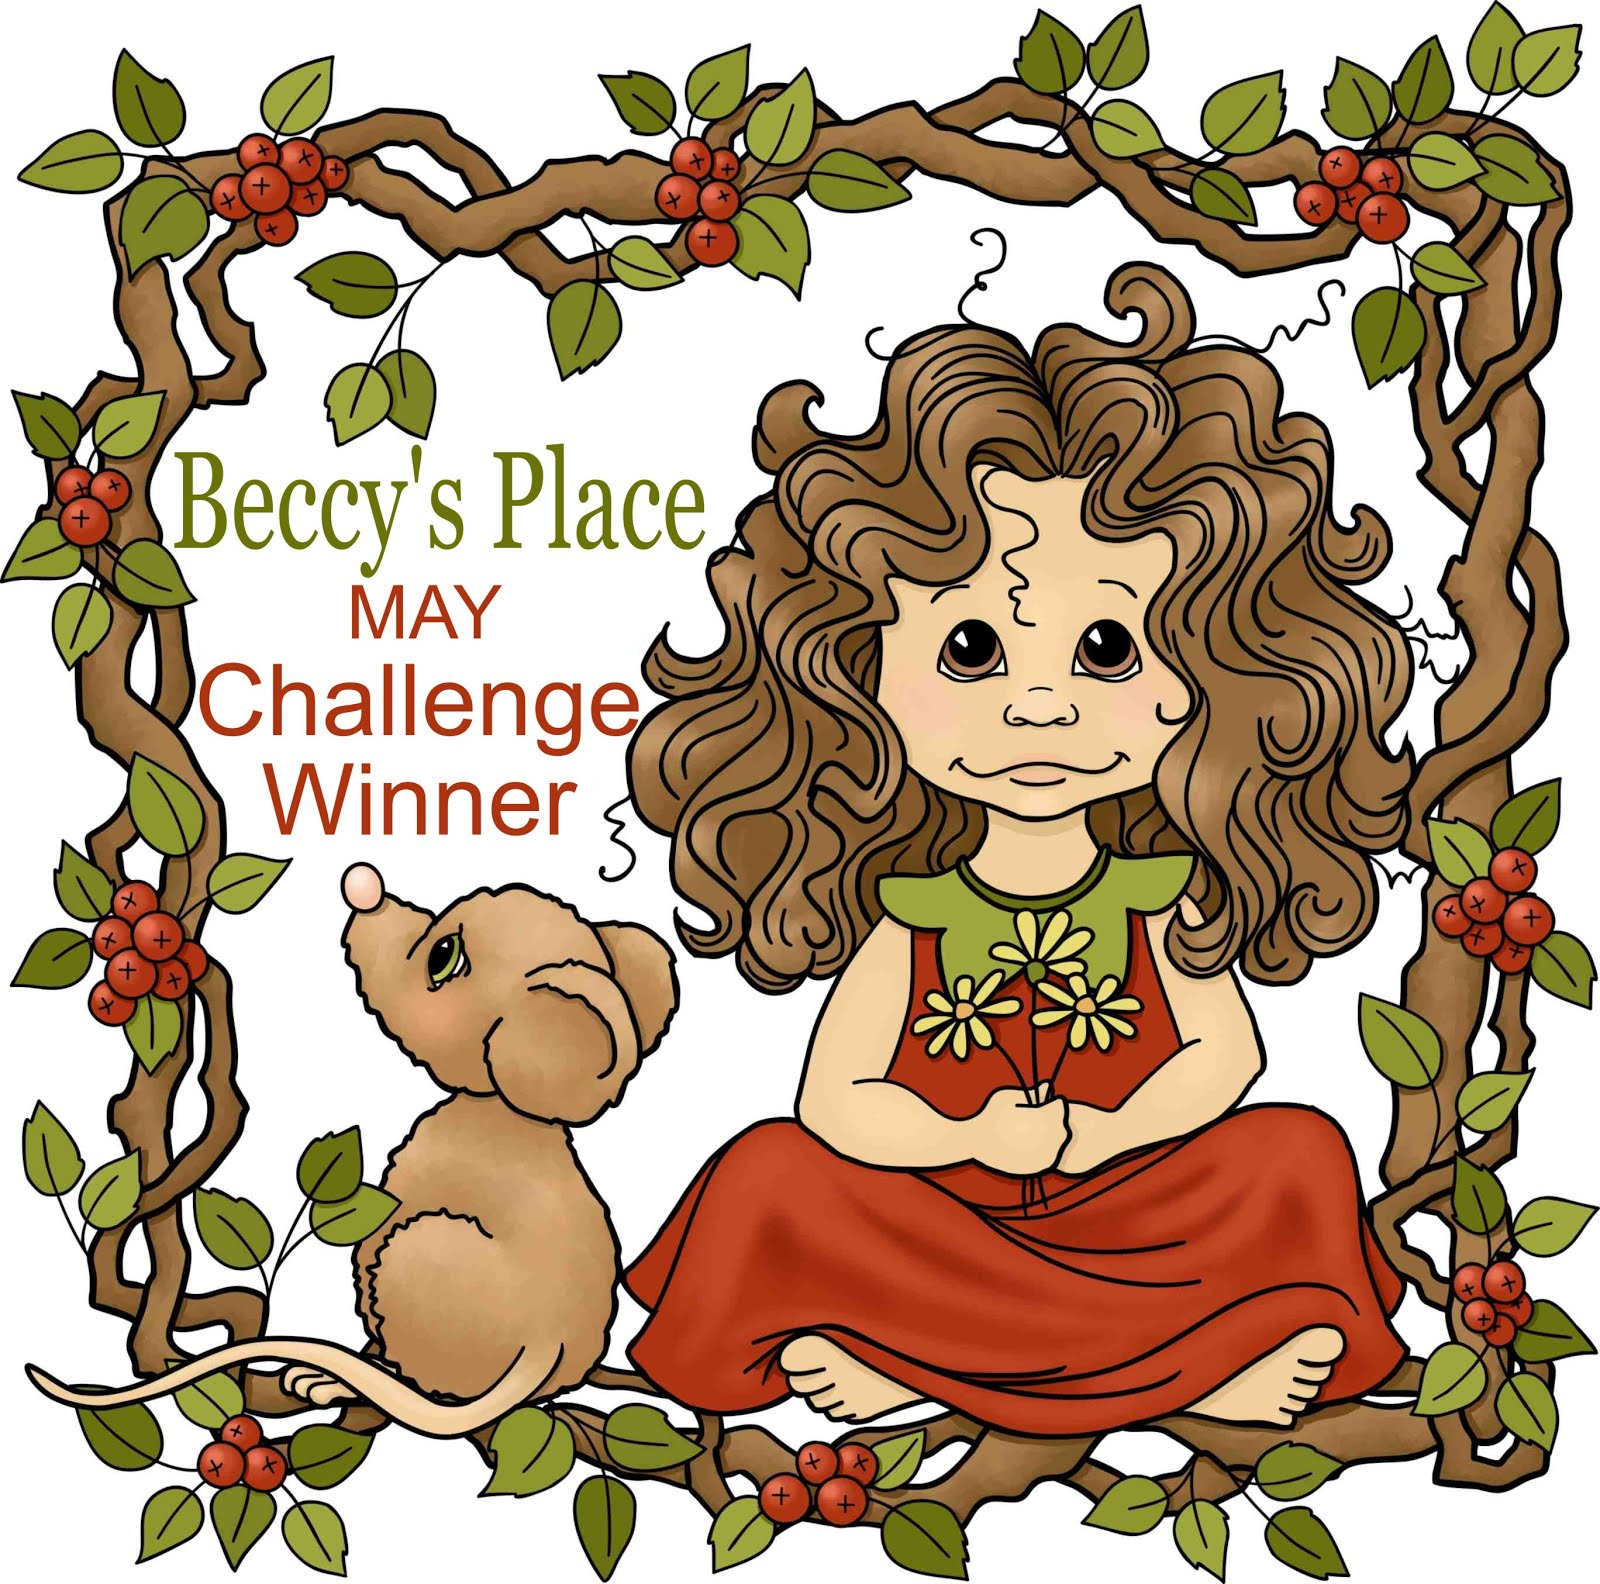 Beccy's Place Winner